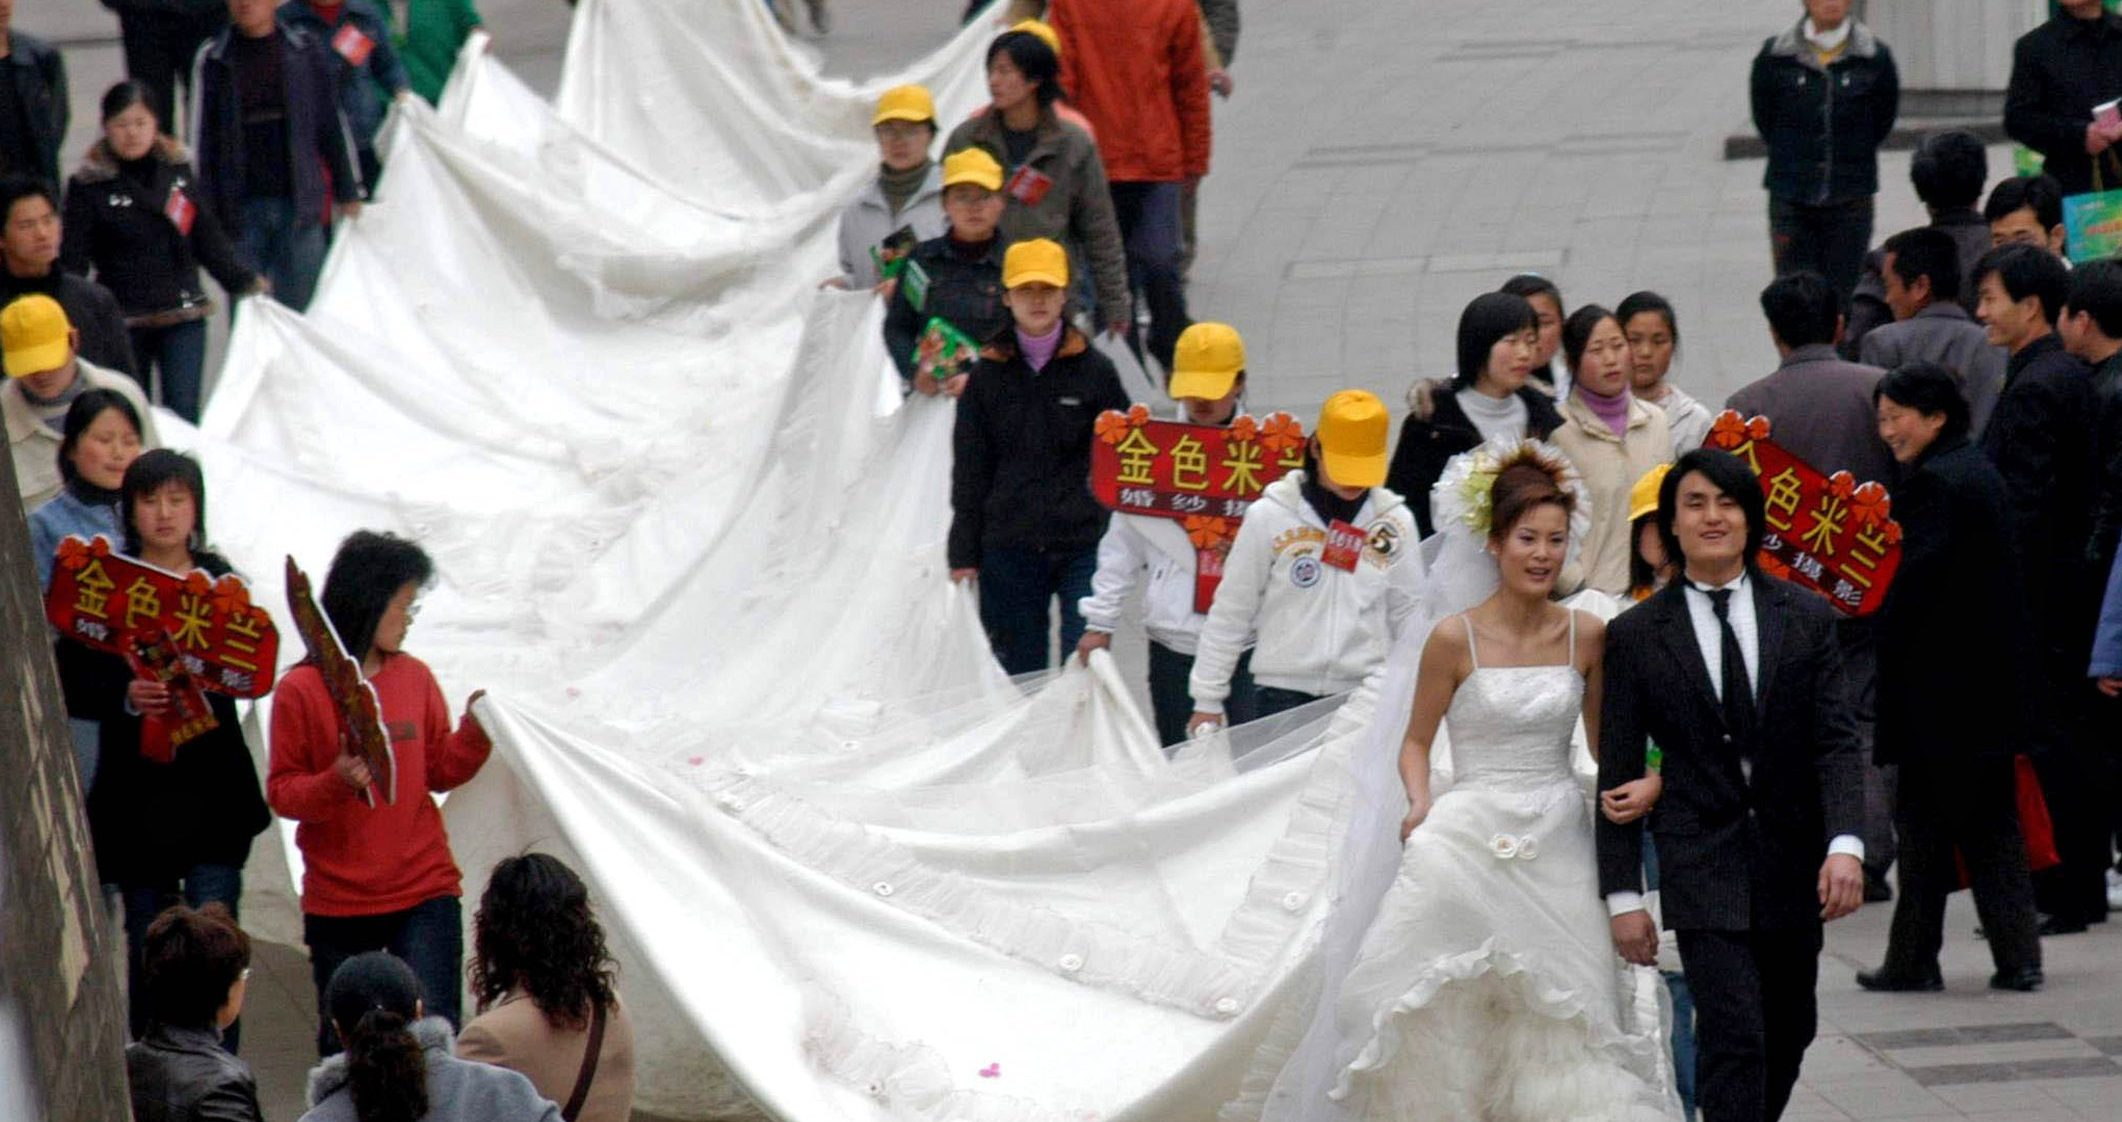 Chinese pedestrians watch a model wearing a 50-metre-long wedding gown on a street in Hefei, east China's Anhui province March 19, 2005. China saw 1.613 million couples divorce in 2004, an increase of 21.2 percent over the previous year, according the Ministry of Civil Affairs.